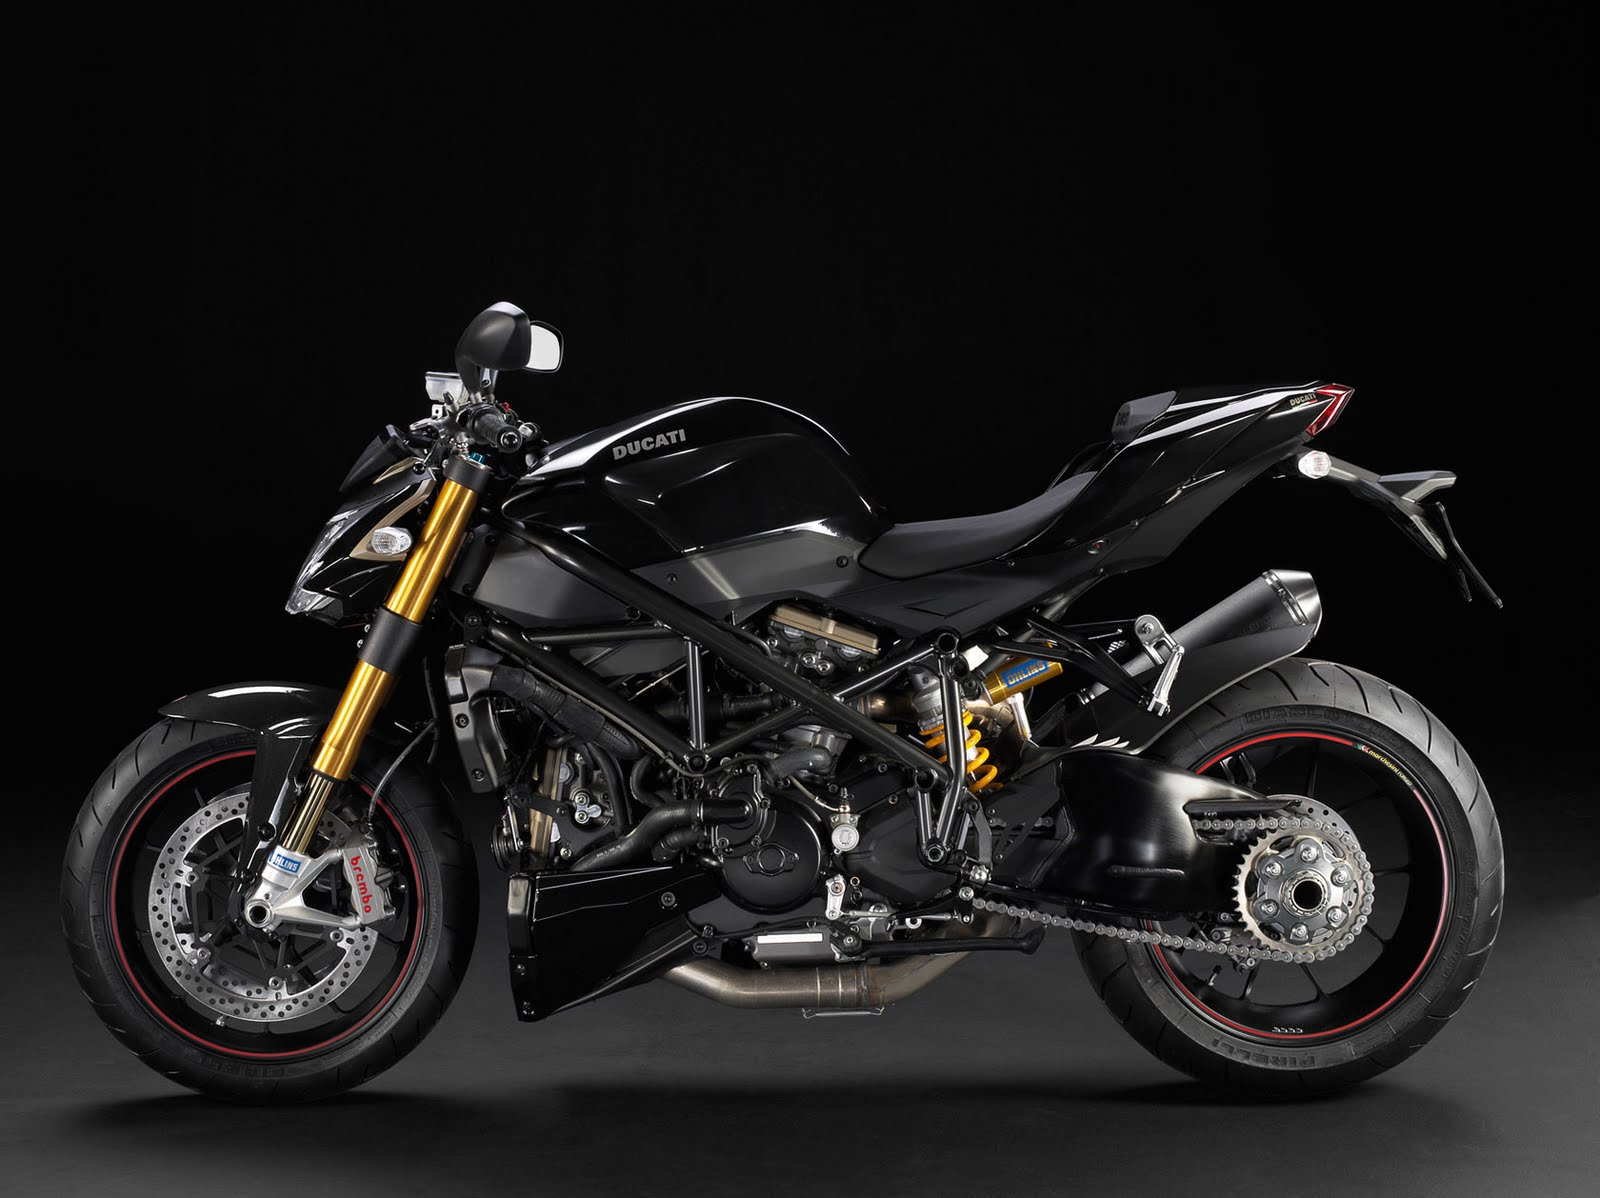 cool motorcycle 1000cc 2011 ducati streetfighter s photo gallery. Black Bedroom Furniture Sets. Home Design Ideas